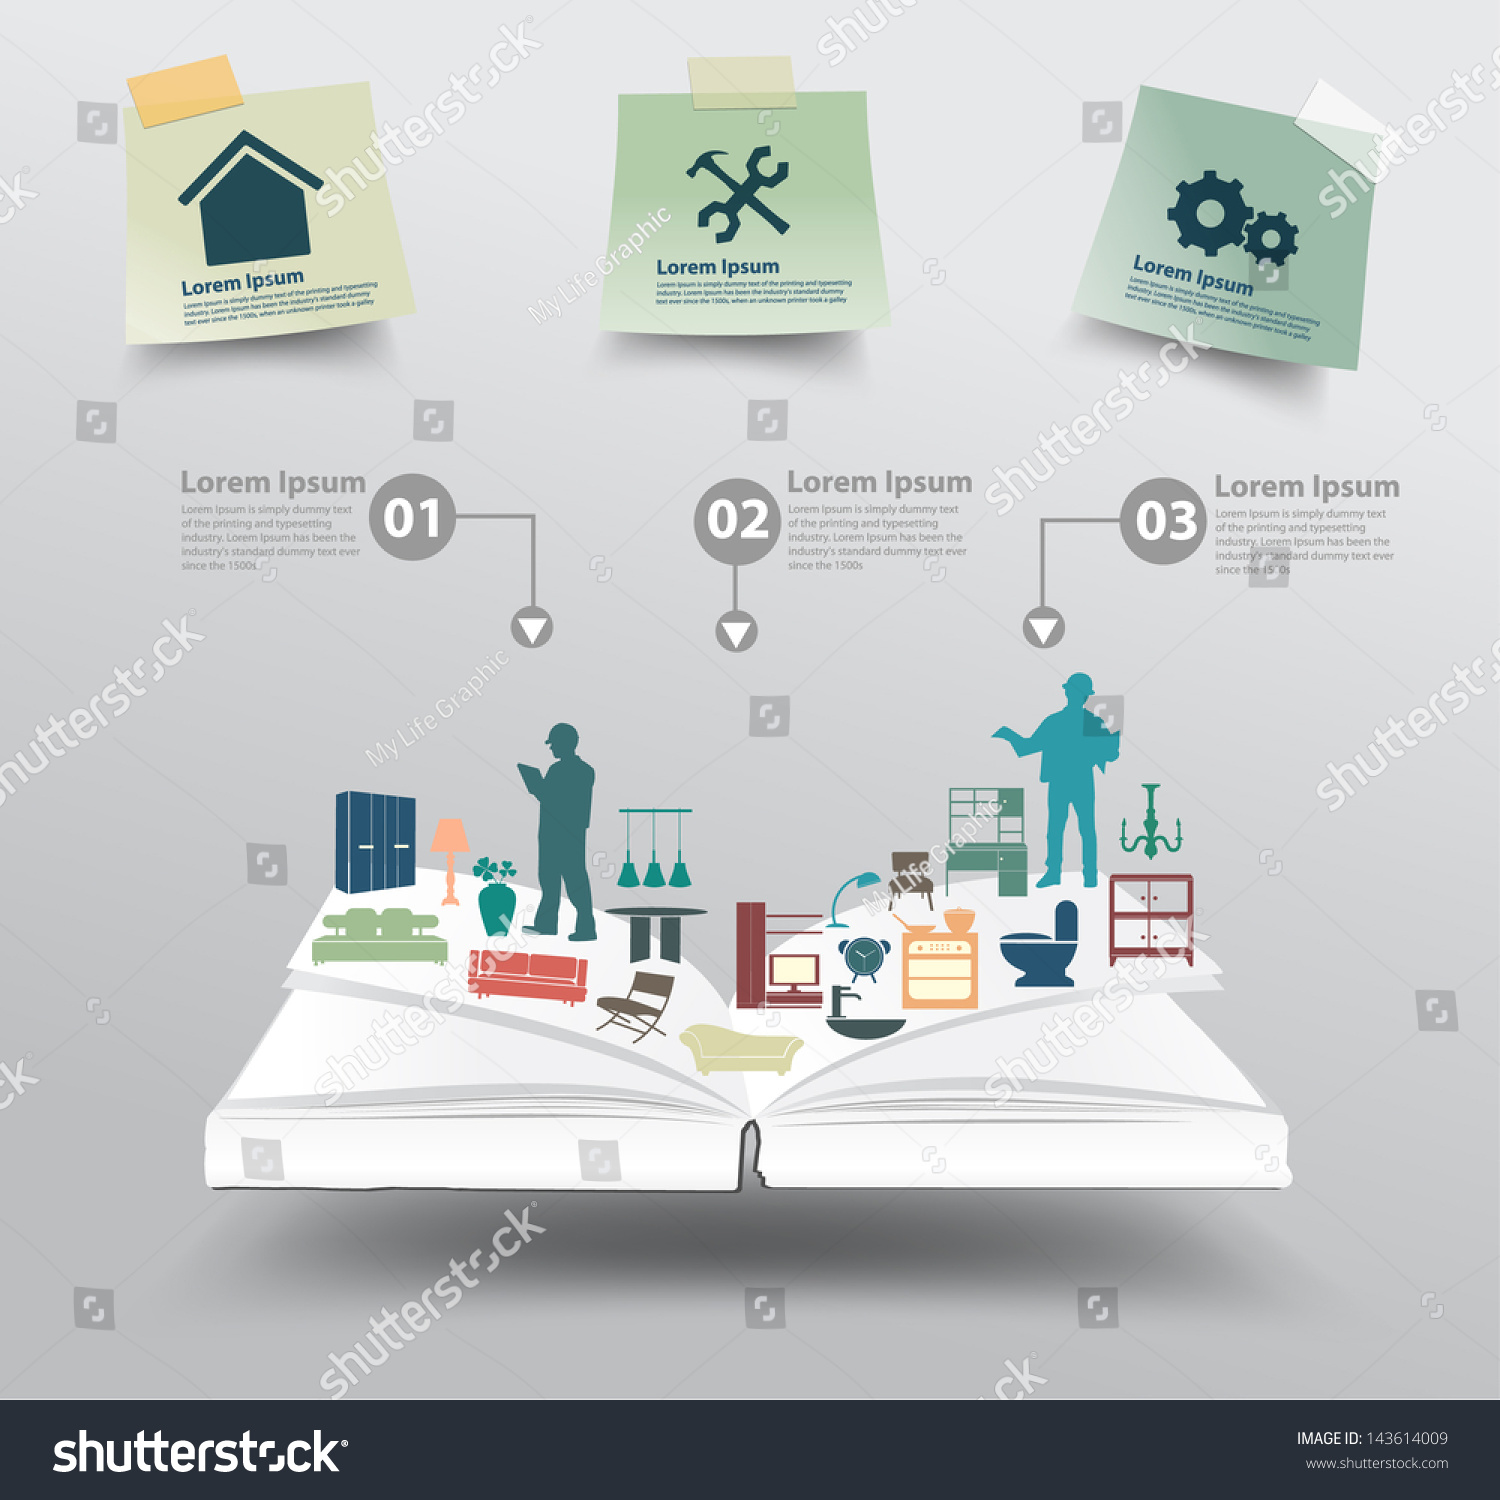 Book With Home Appliances Icons Home Improvement And Decoration Service Concept Idea Vector Illustration